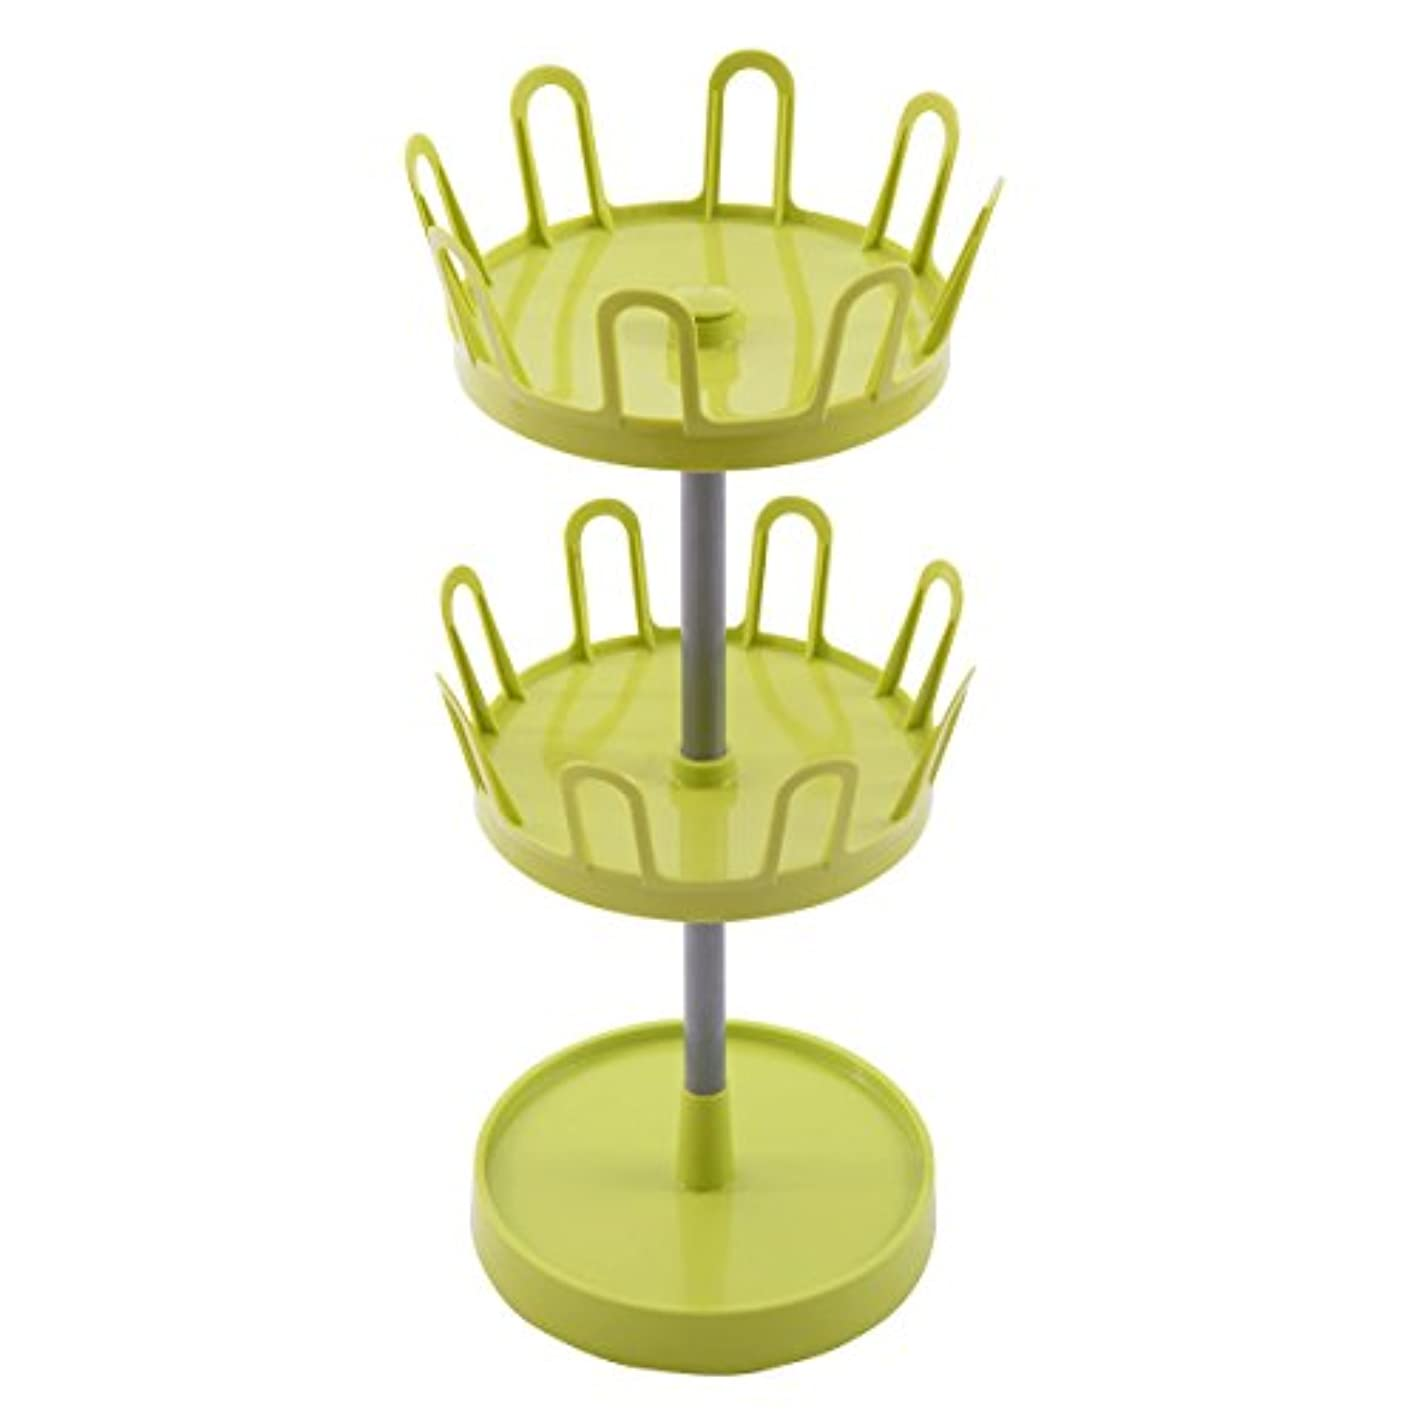 2 Tier 8 Pairs Upright Revolving Shoe Tree Rack Organizer Stand Dorm Home New Green